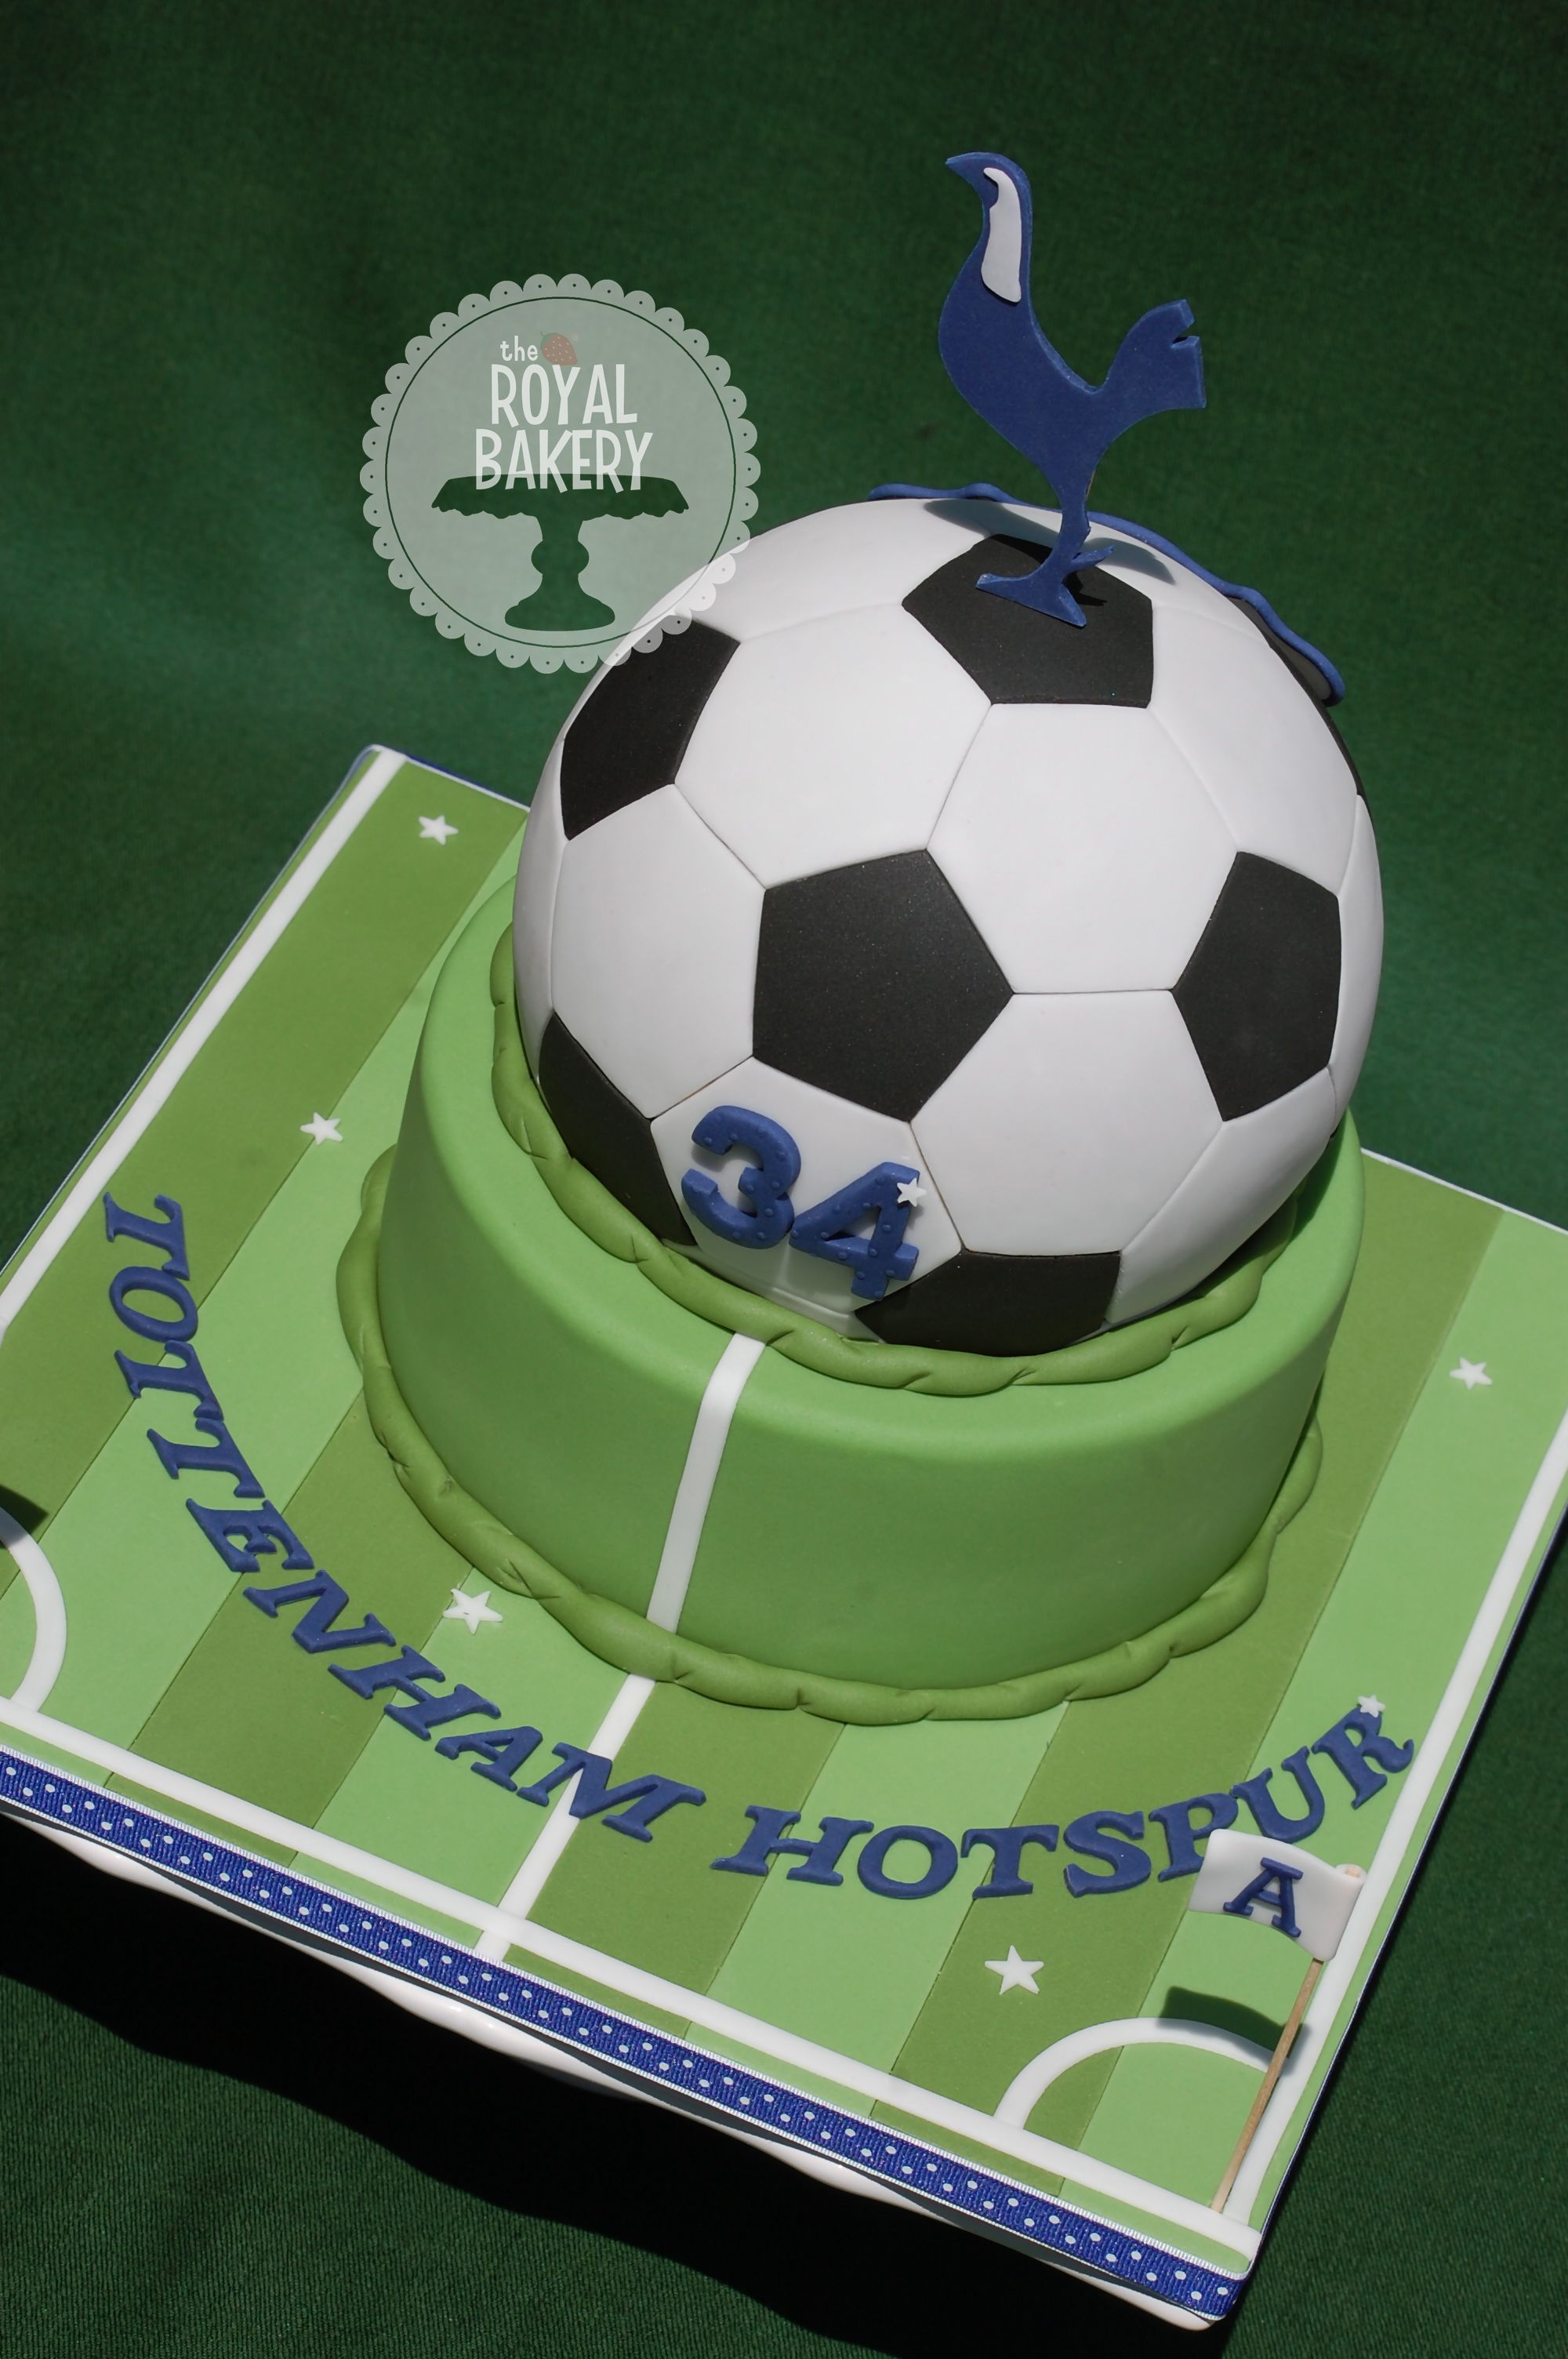 A Totteham Hotspur Themed Soccer Football Cake The Ball